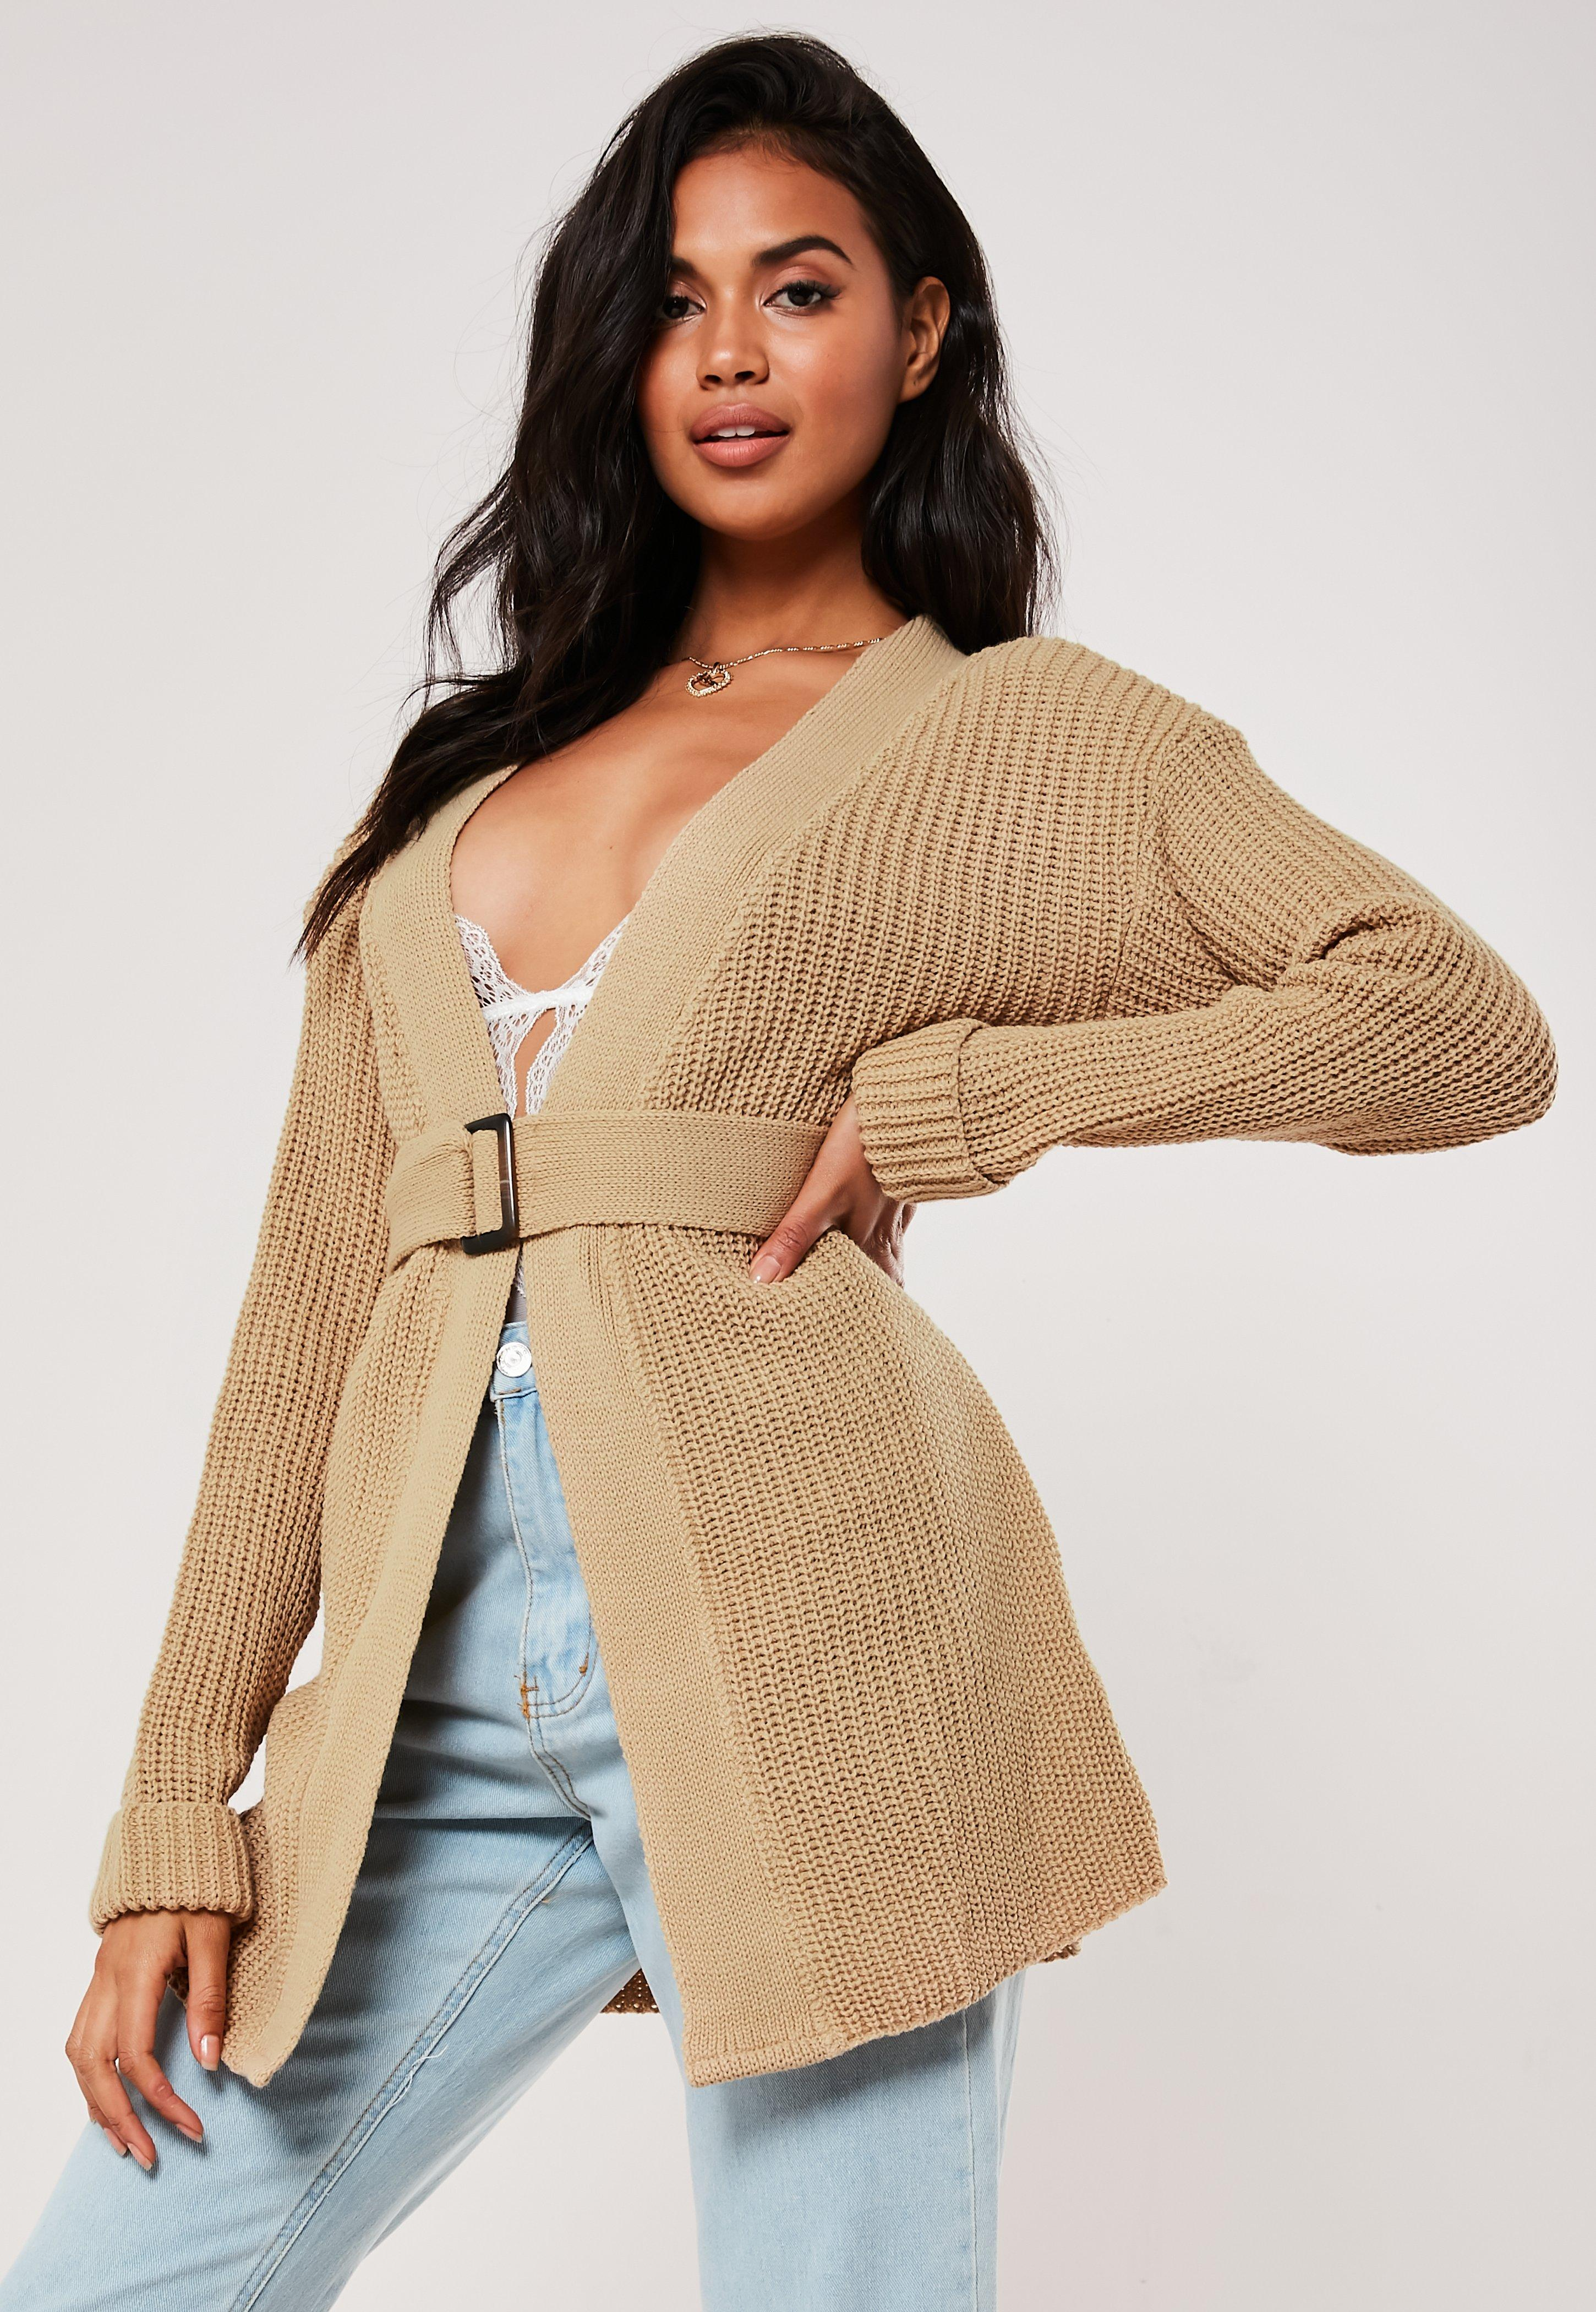 467ce2916 Casual Clothing | Casual Wear for Women - Missguided